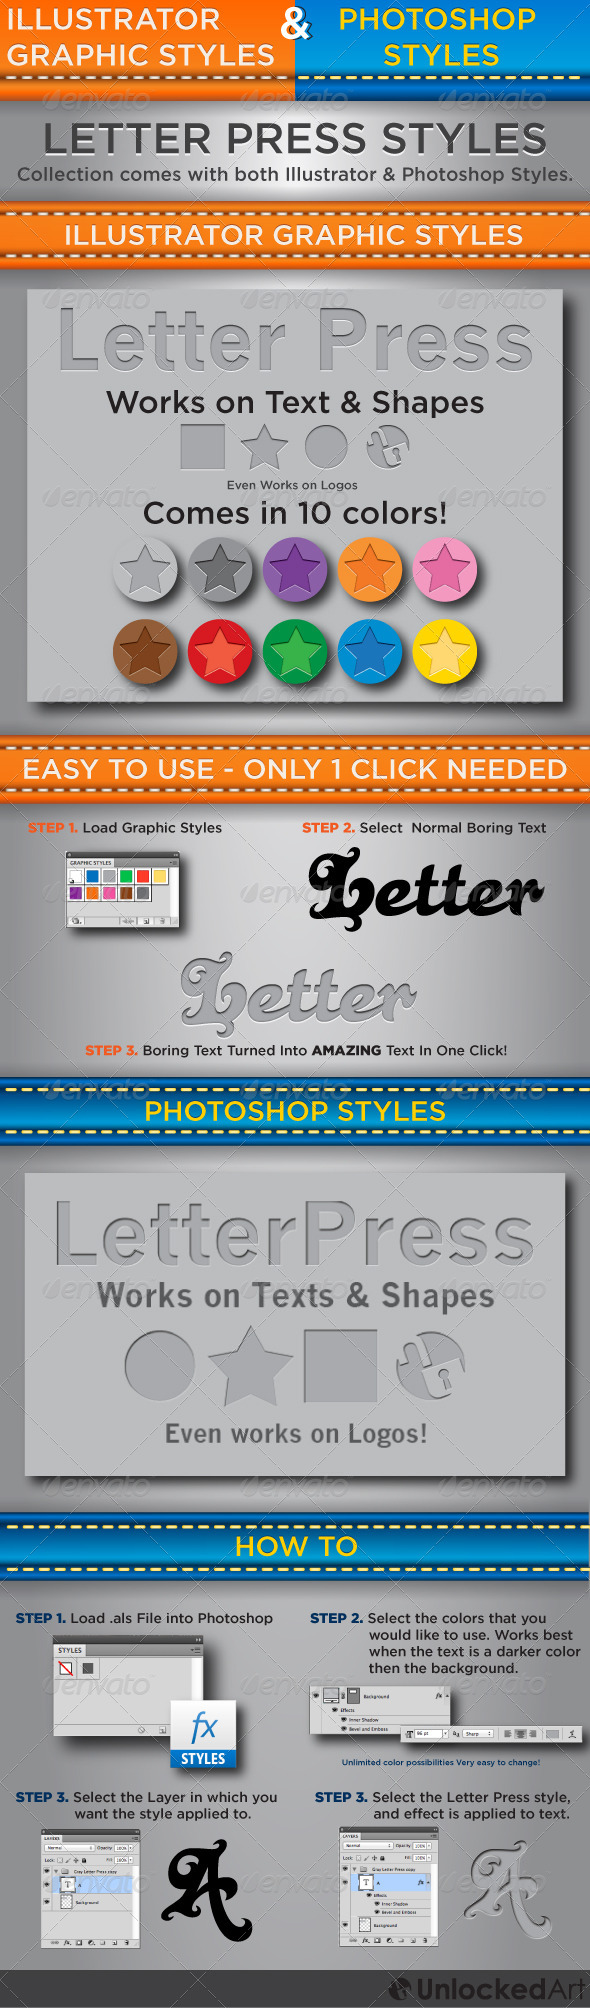 Letter Press Styles - Illustrator & Photoshop - Add-ons